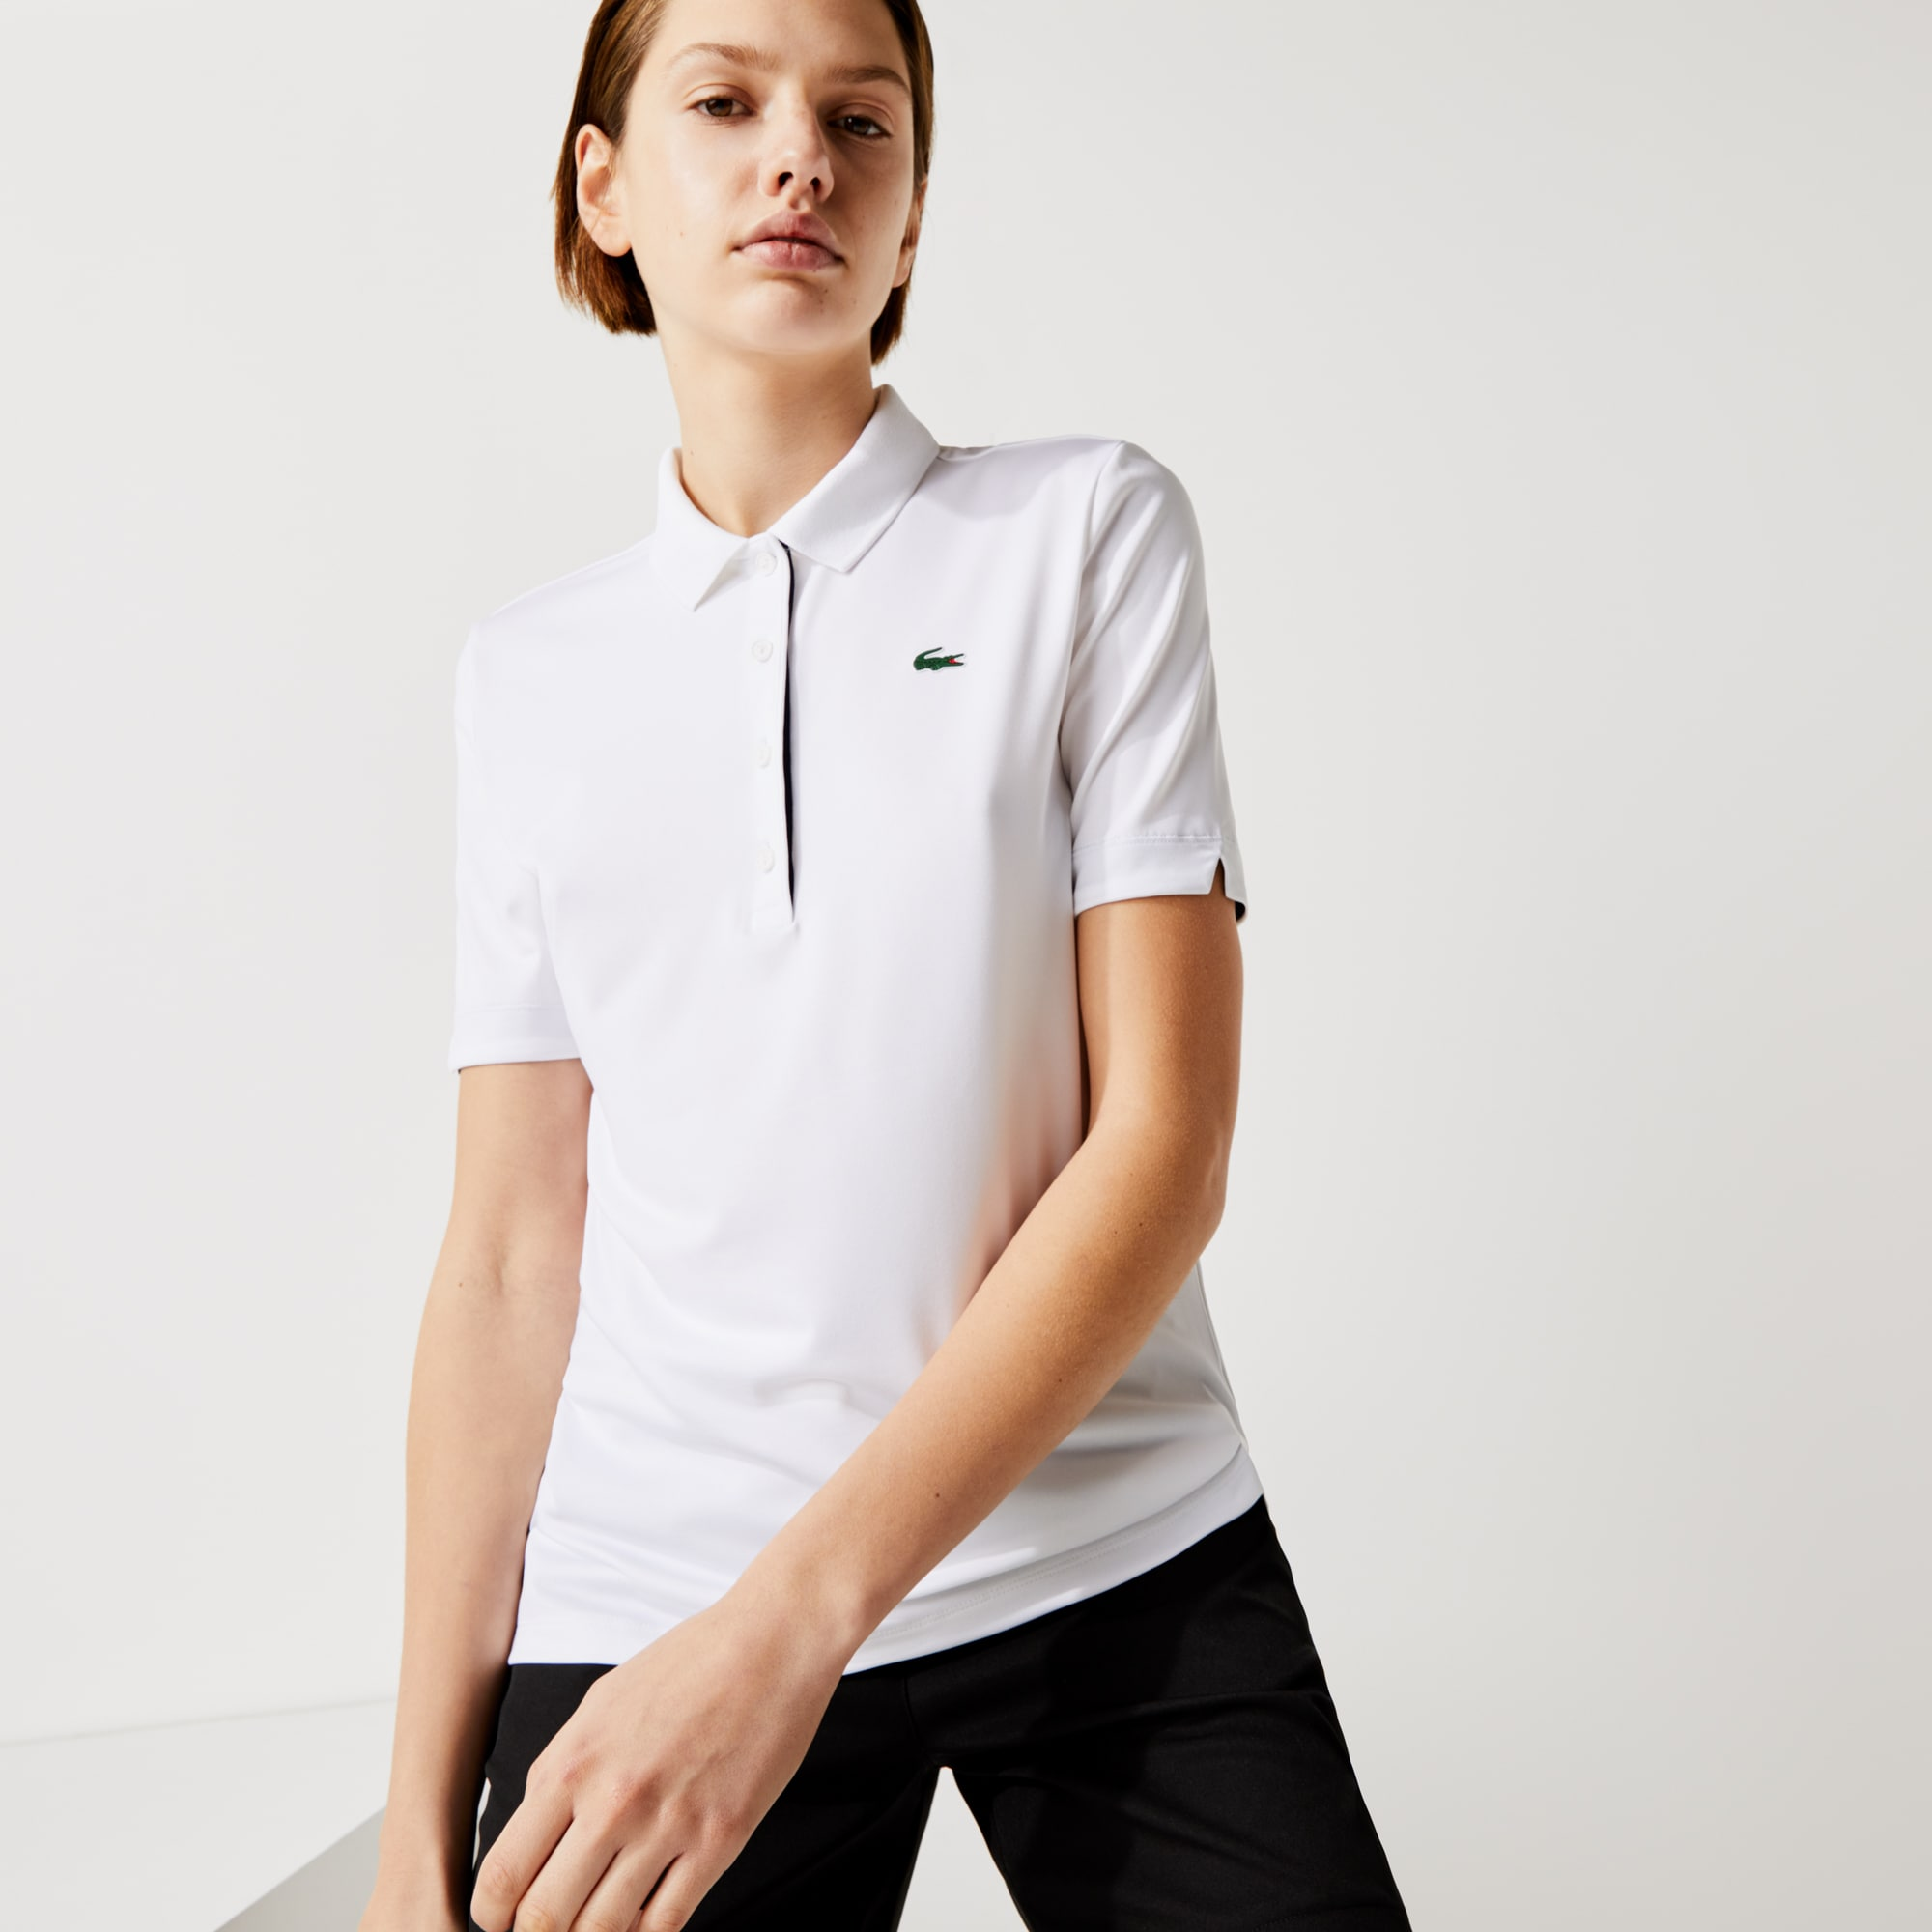 Women's Lacoste SPORT Breathable Stretch Golf Polo Shirt